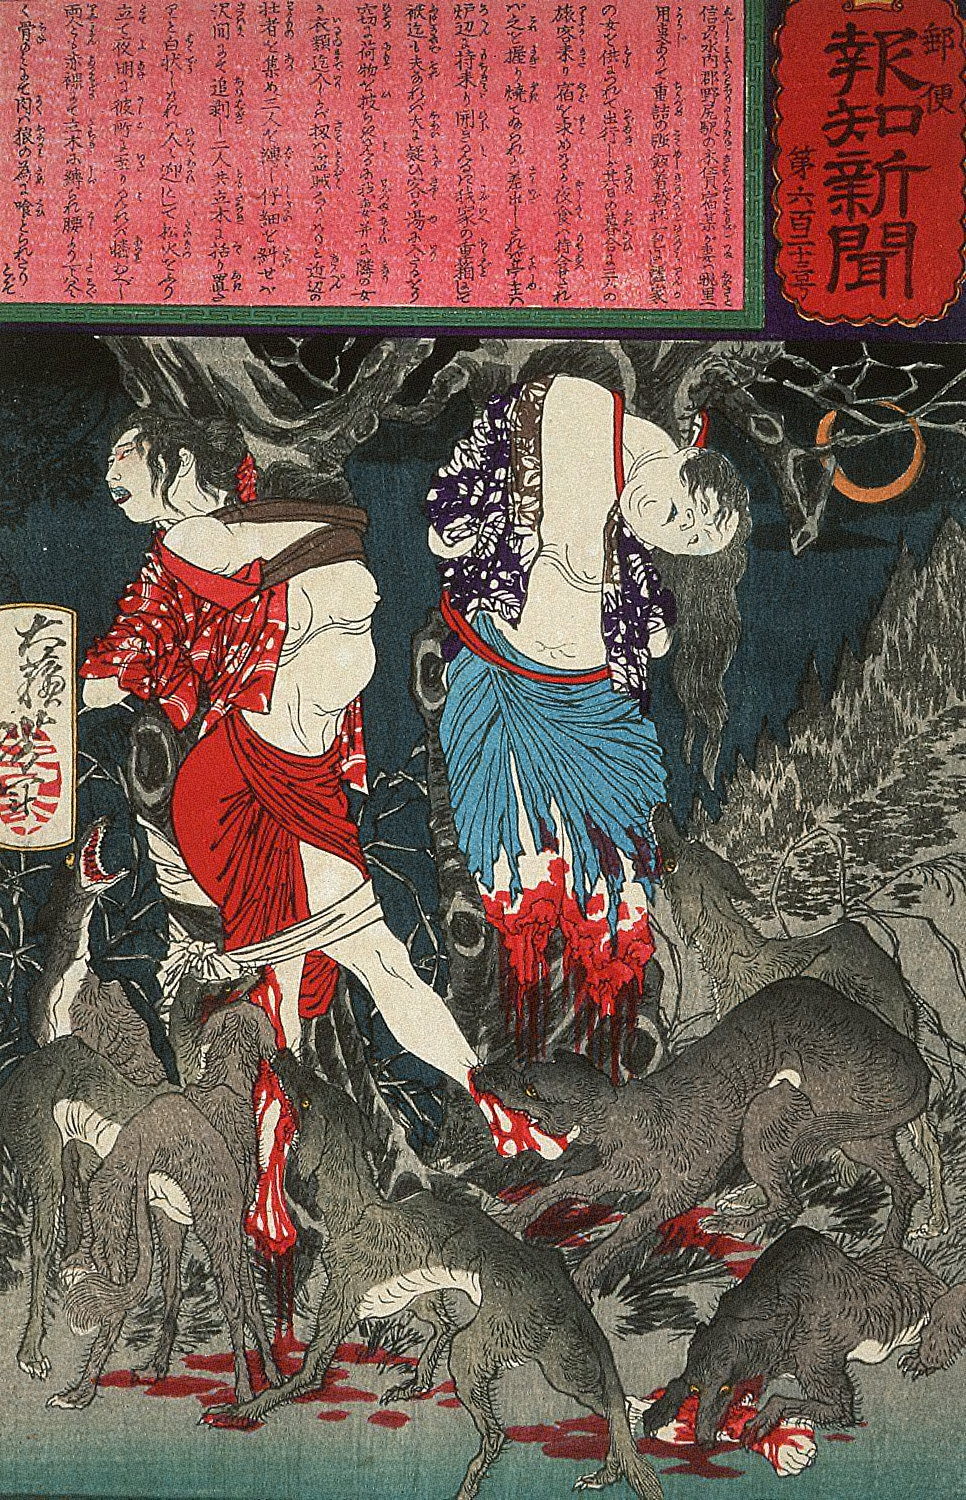 [Two Women of Nojiri Who were Robbed, Tied to Trees, and Eaten by Wolves, The Postal News, No. 623]